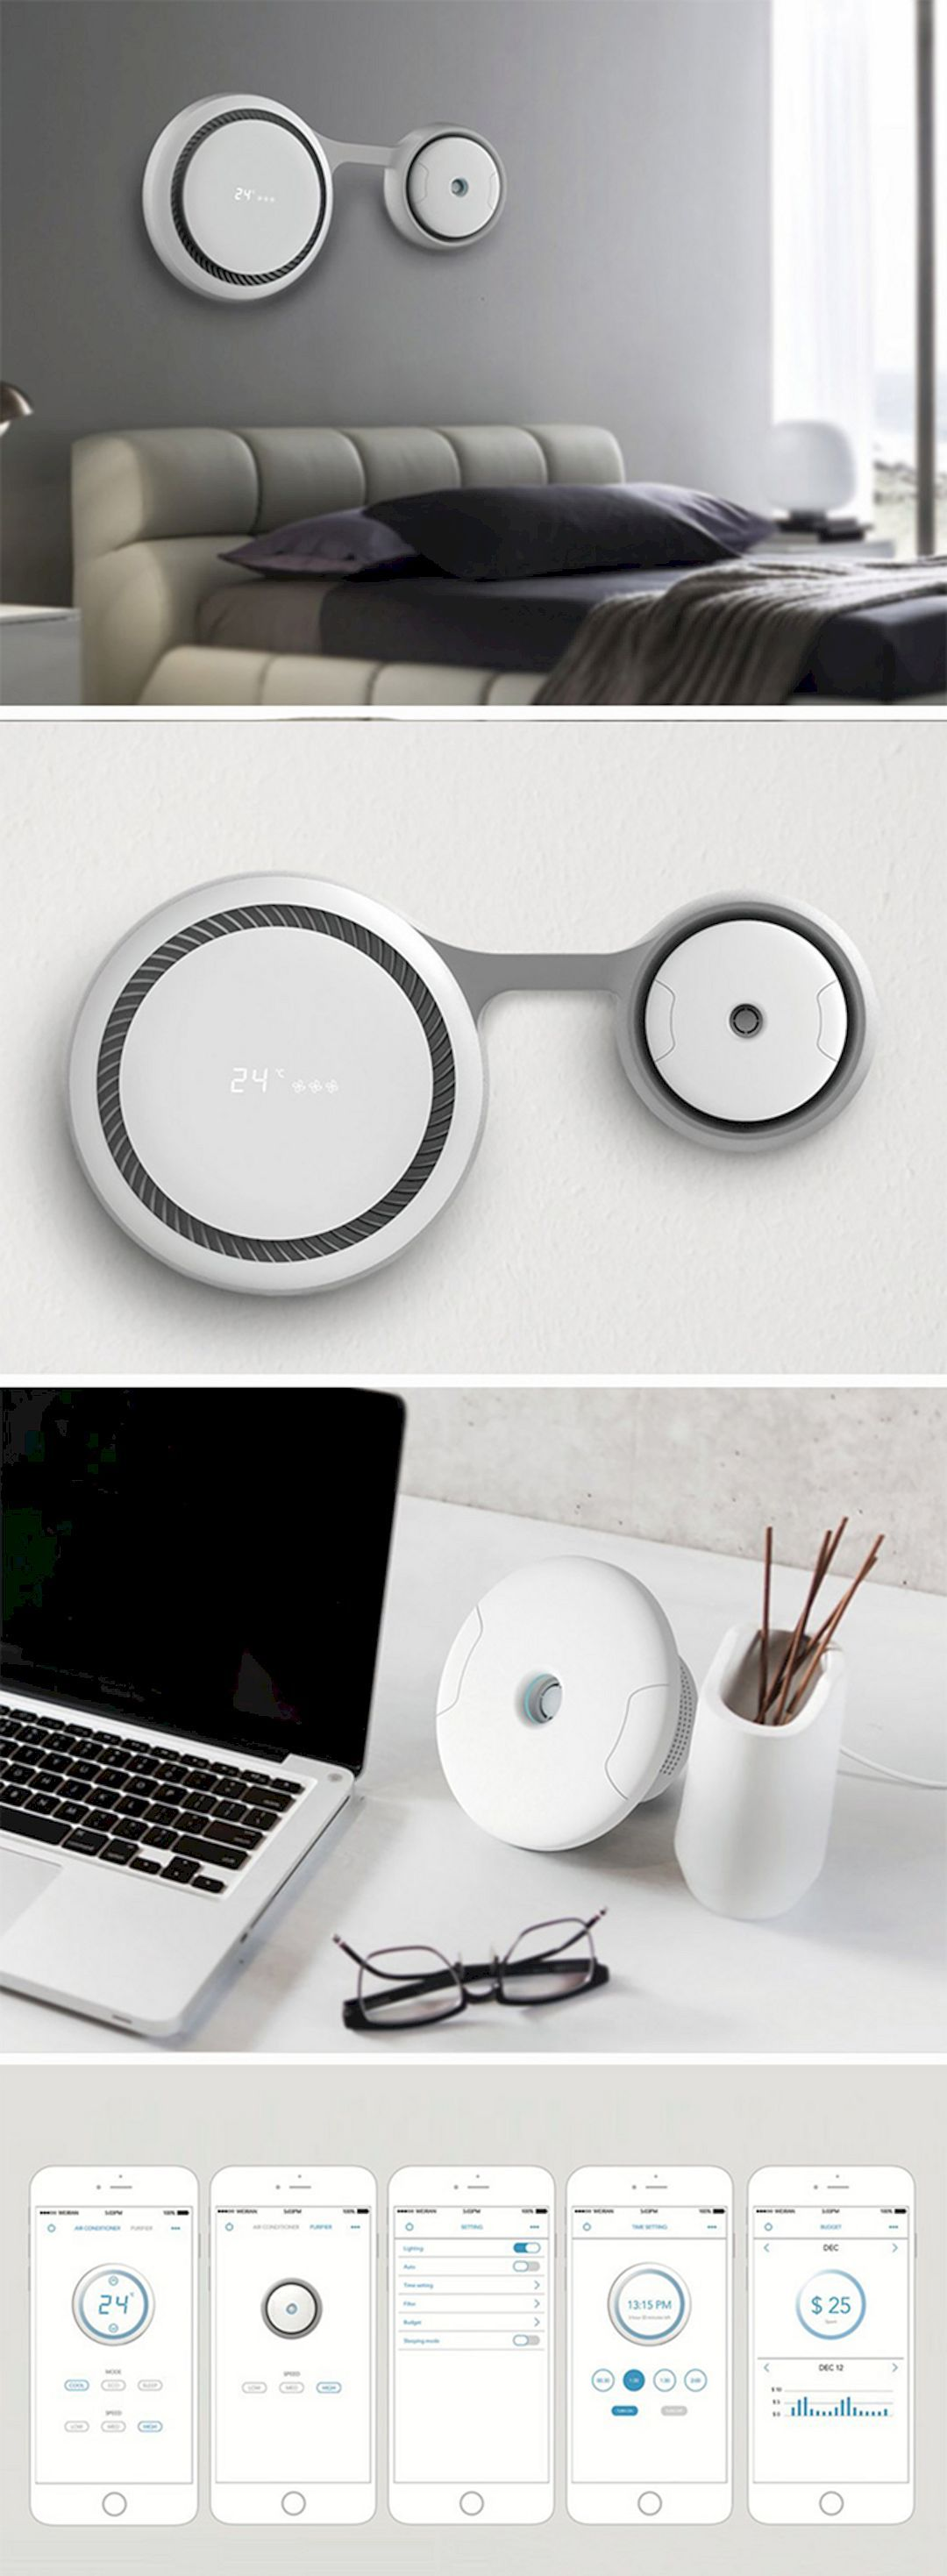 Sony Reon Pocket The Real Wearable Air Conditioner